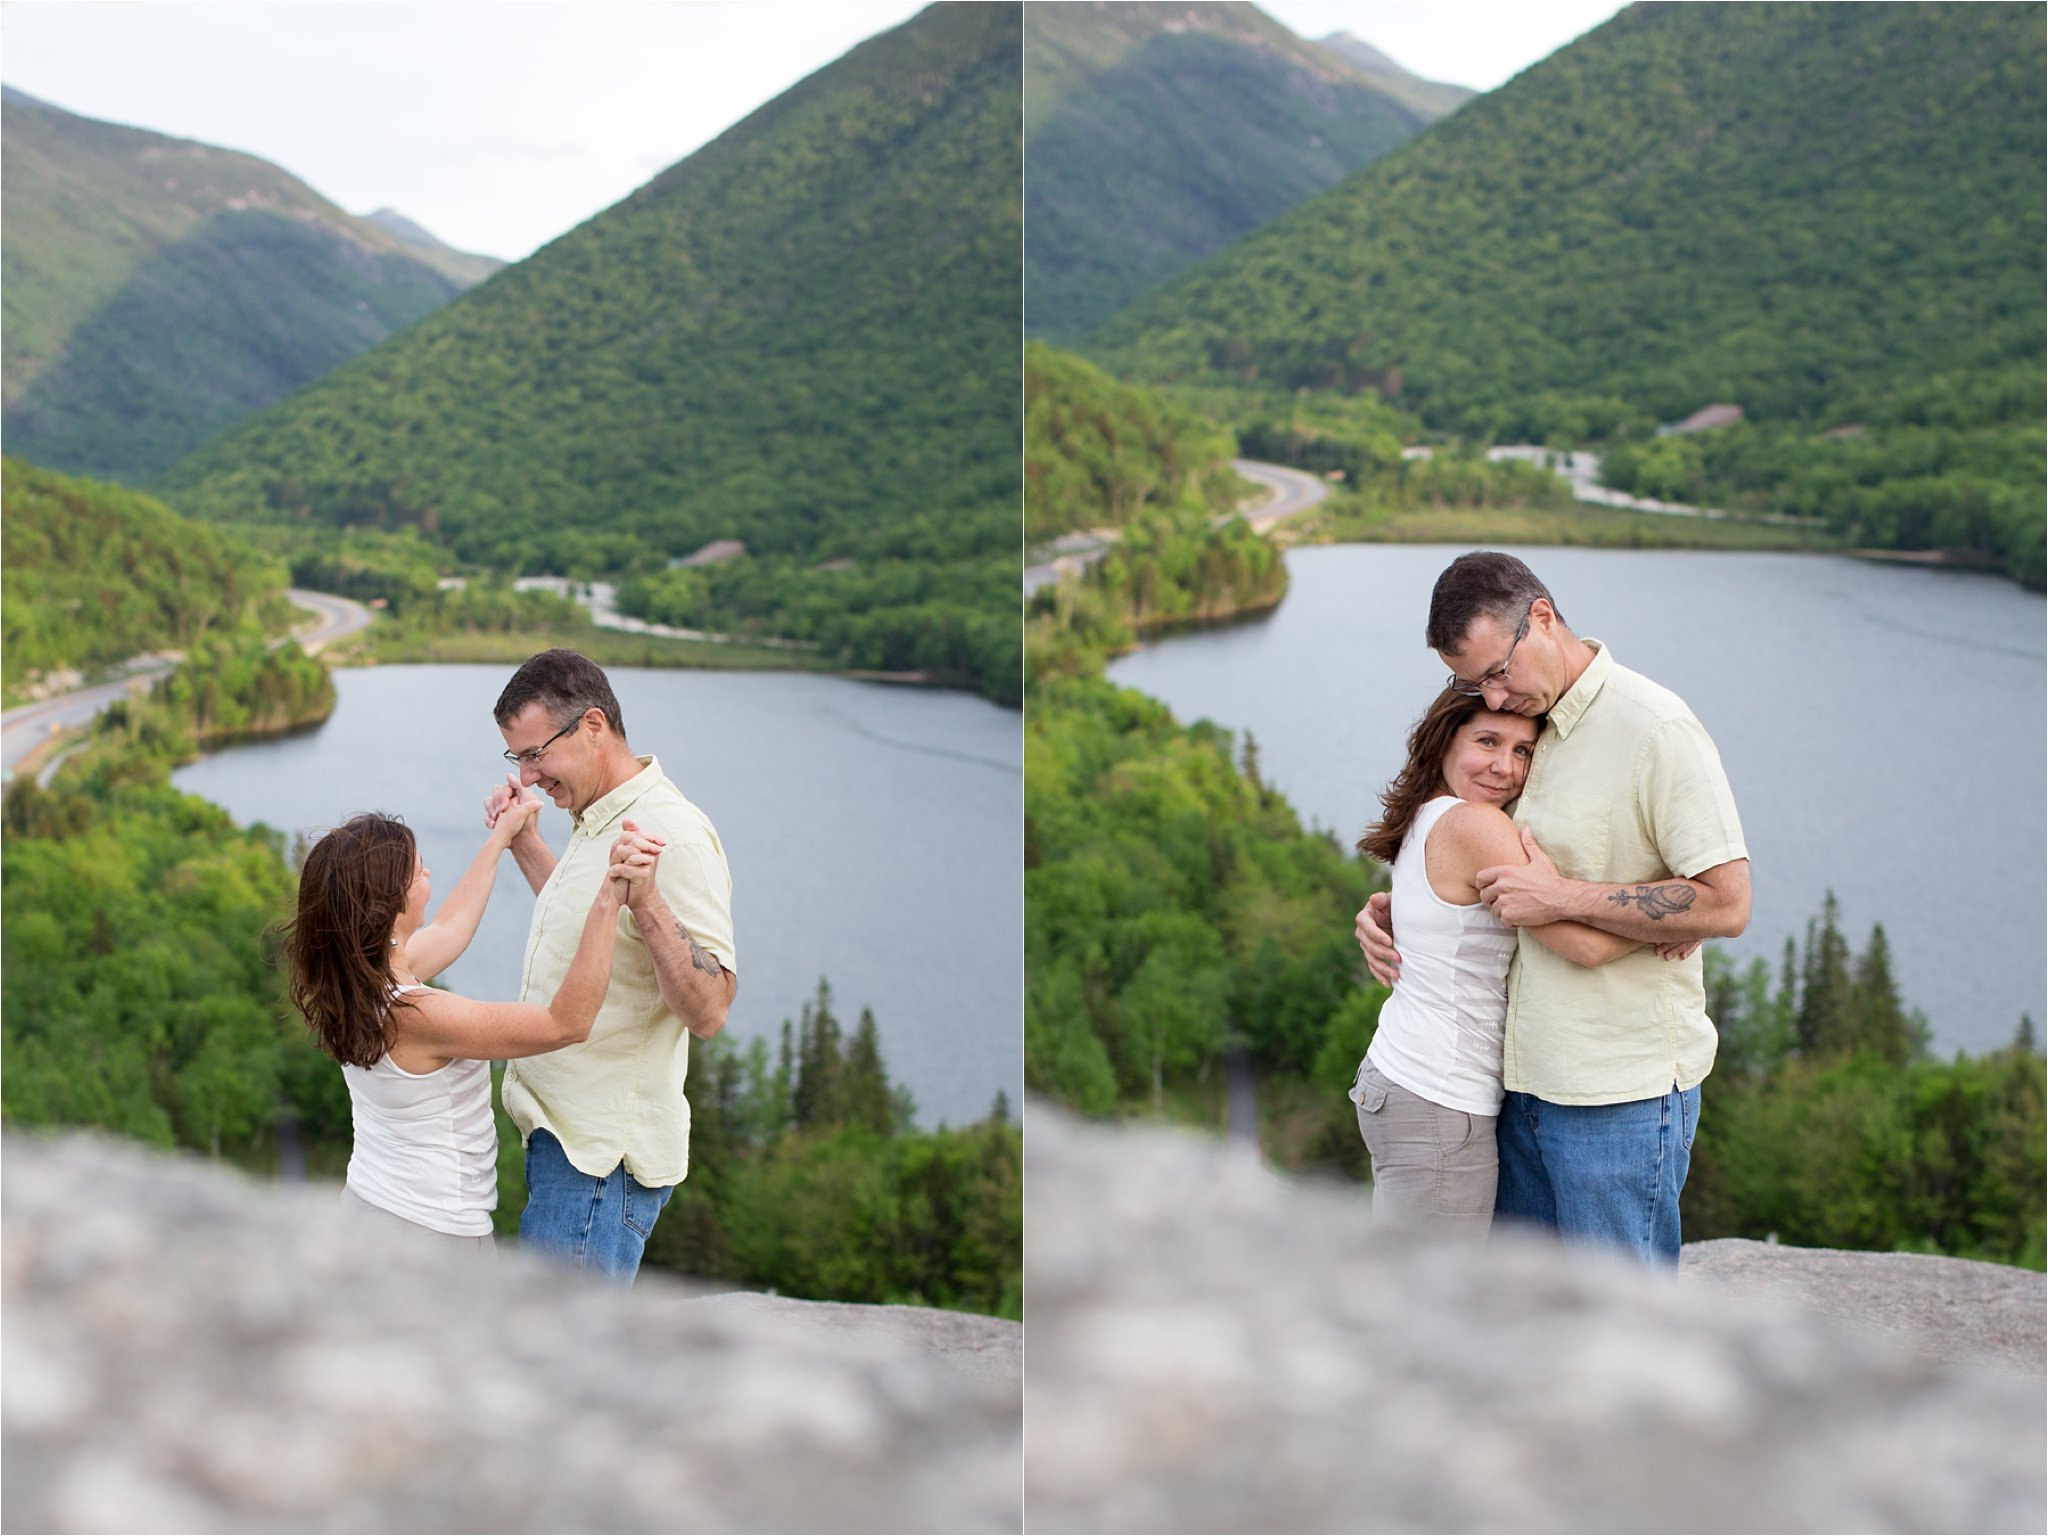 A Playful Engaged Couple on Artist's Bluff, Franconia Notch